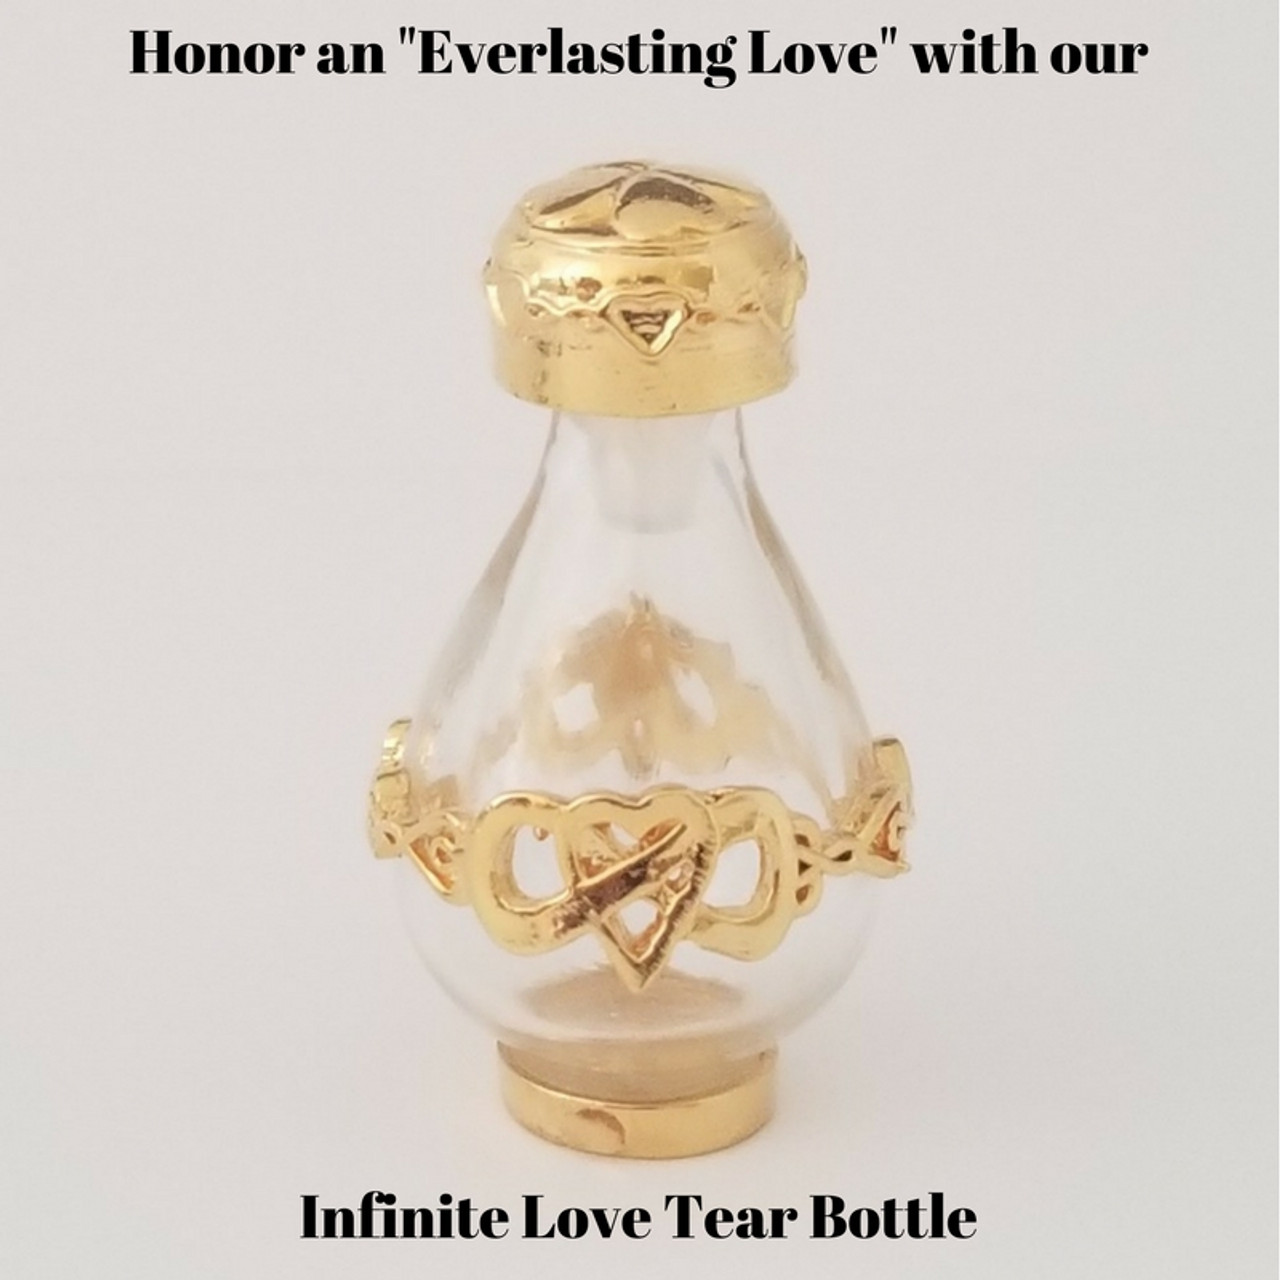 Infinite Love Tear Bottle